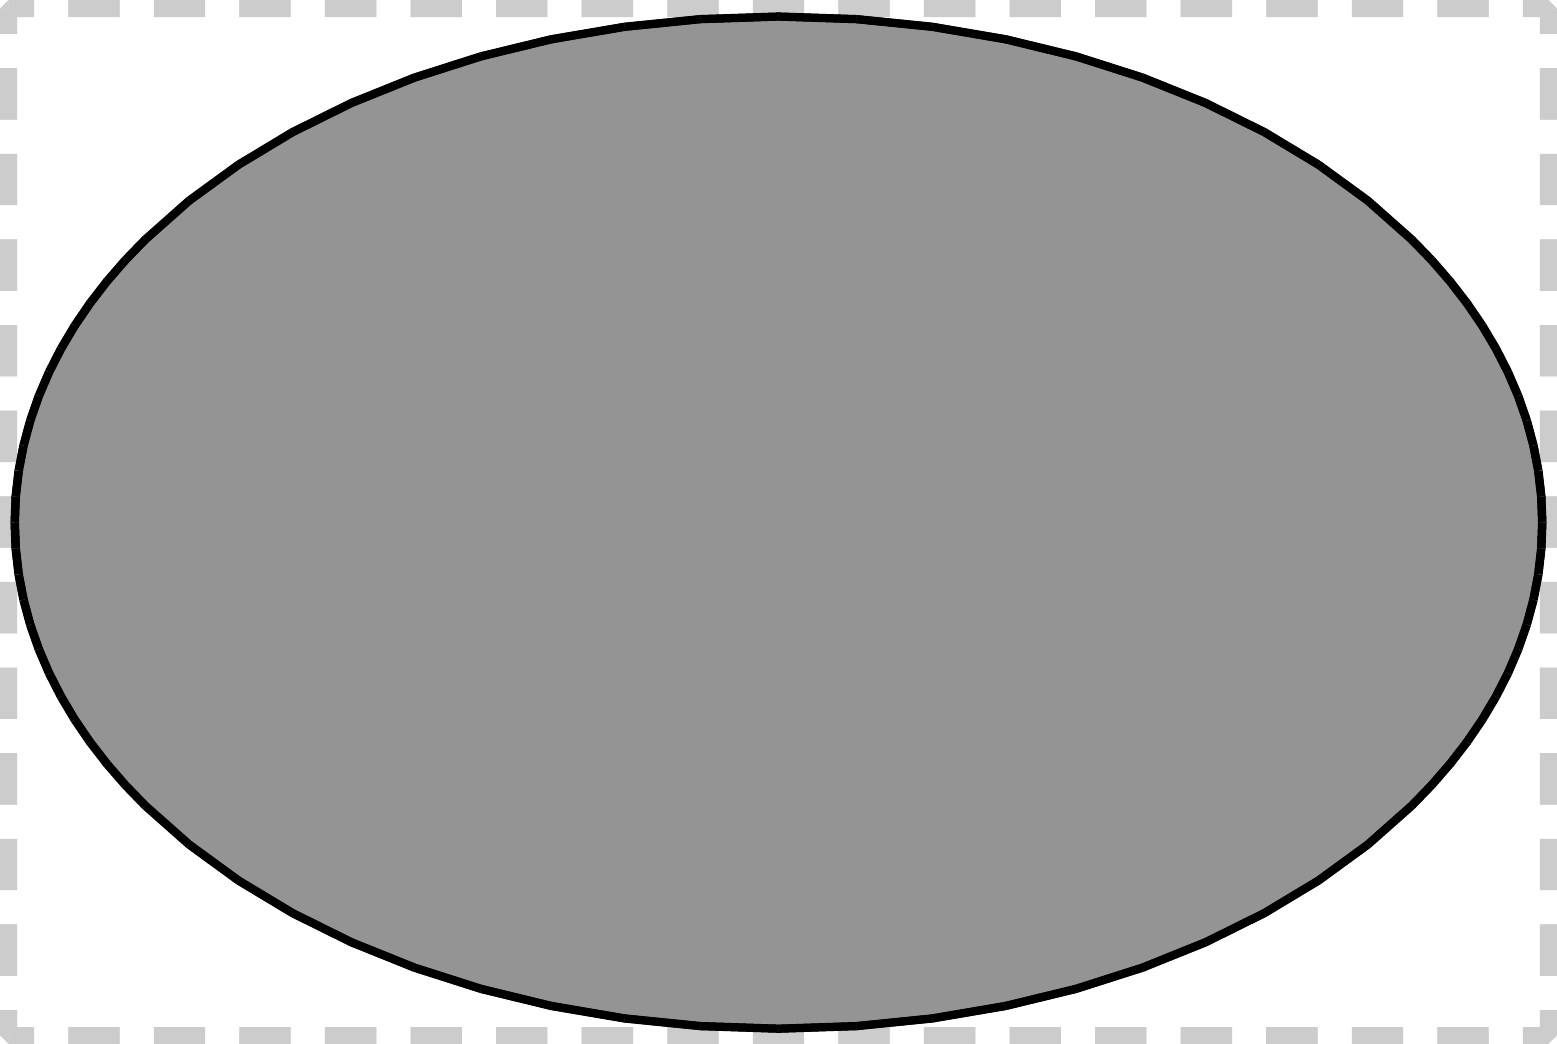 A - Ovoid